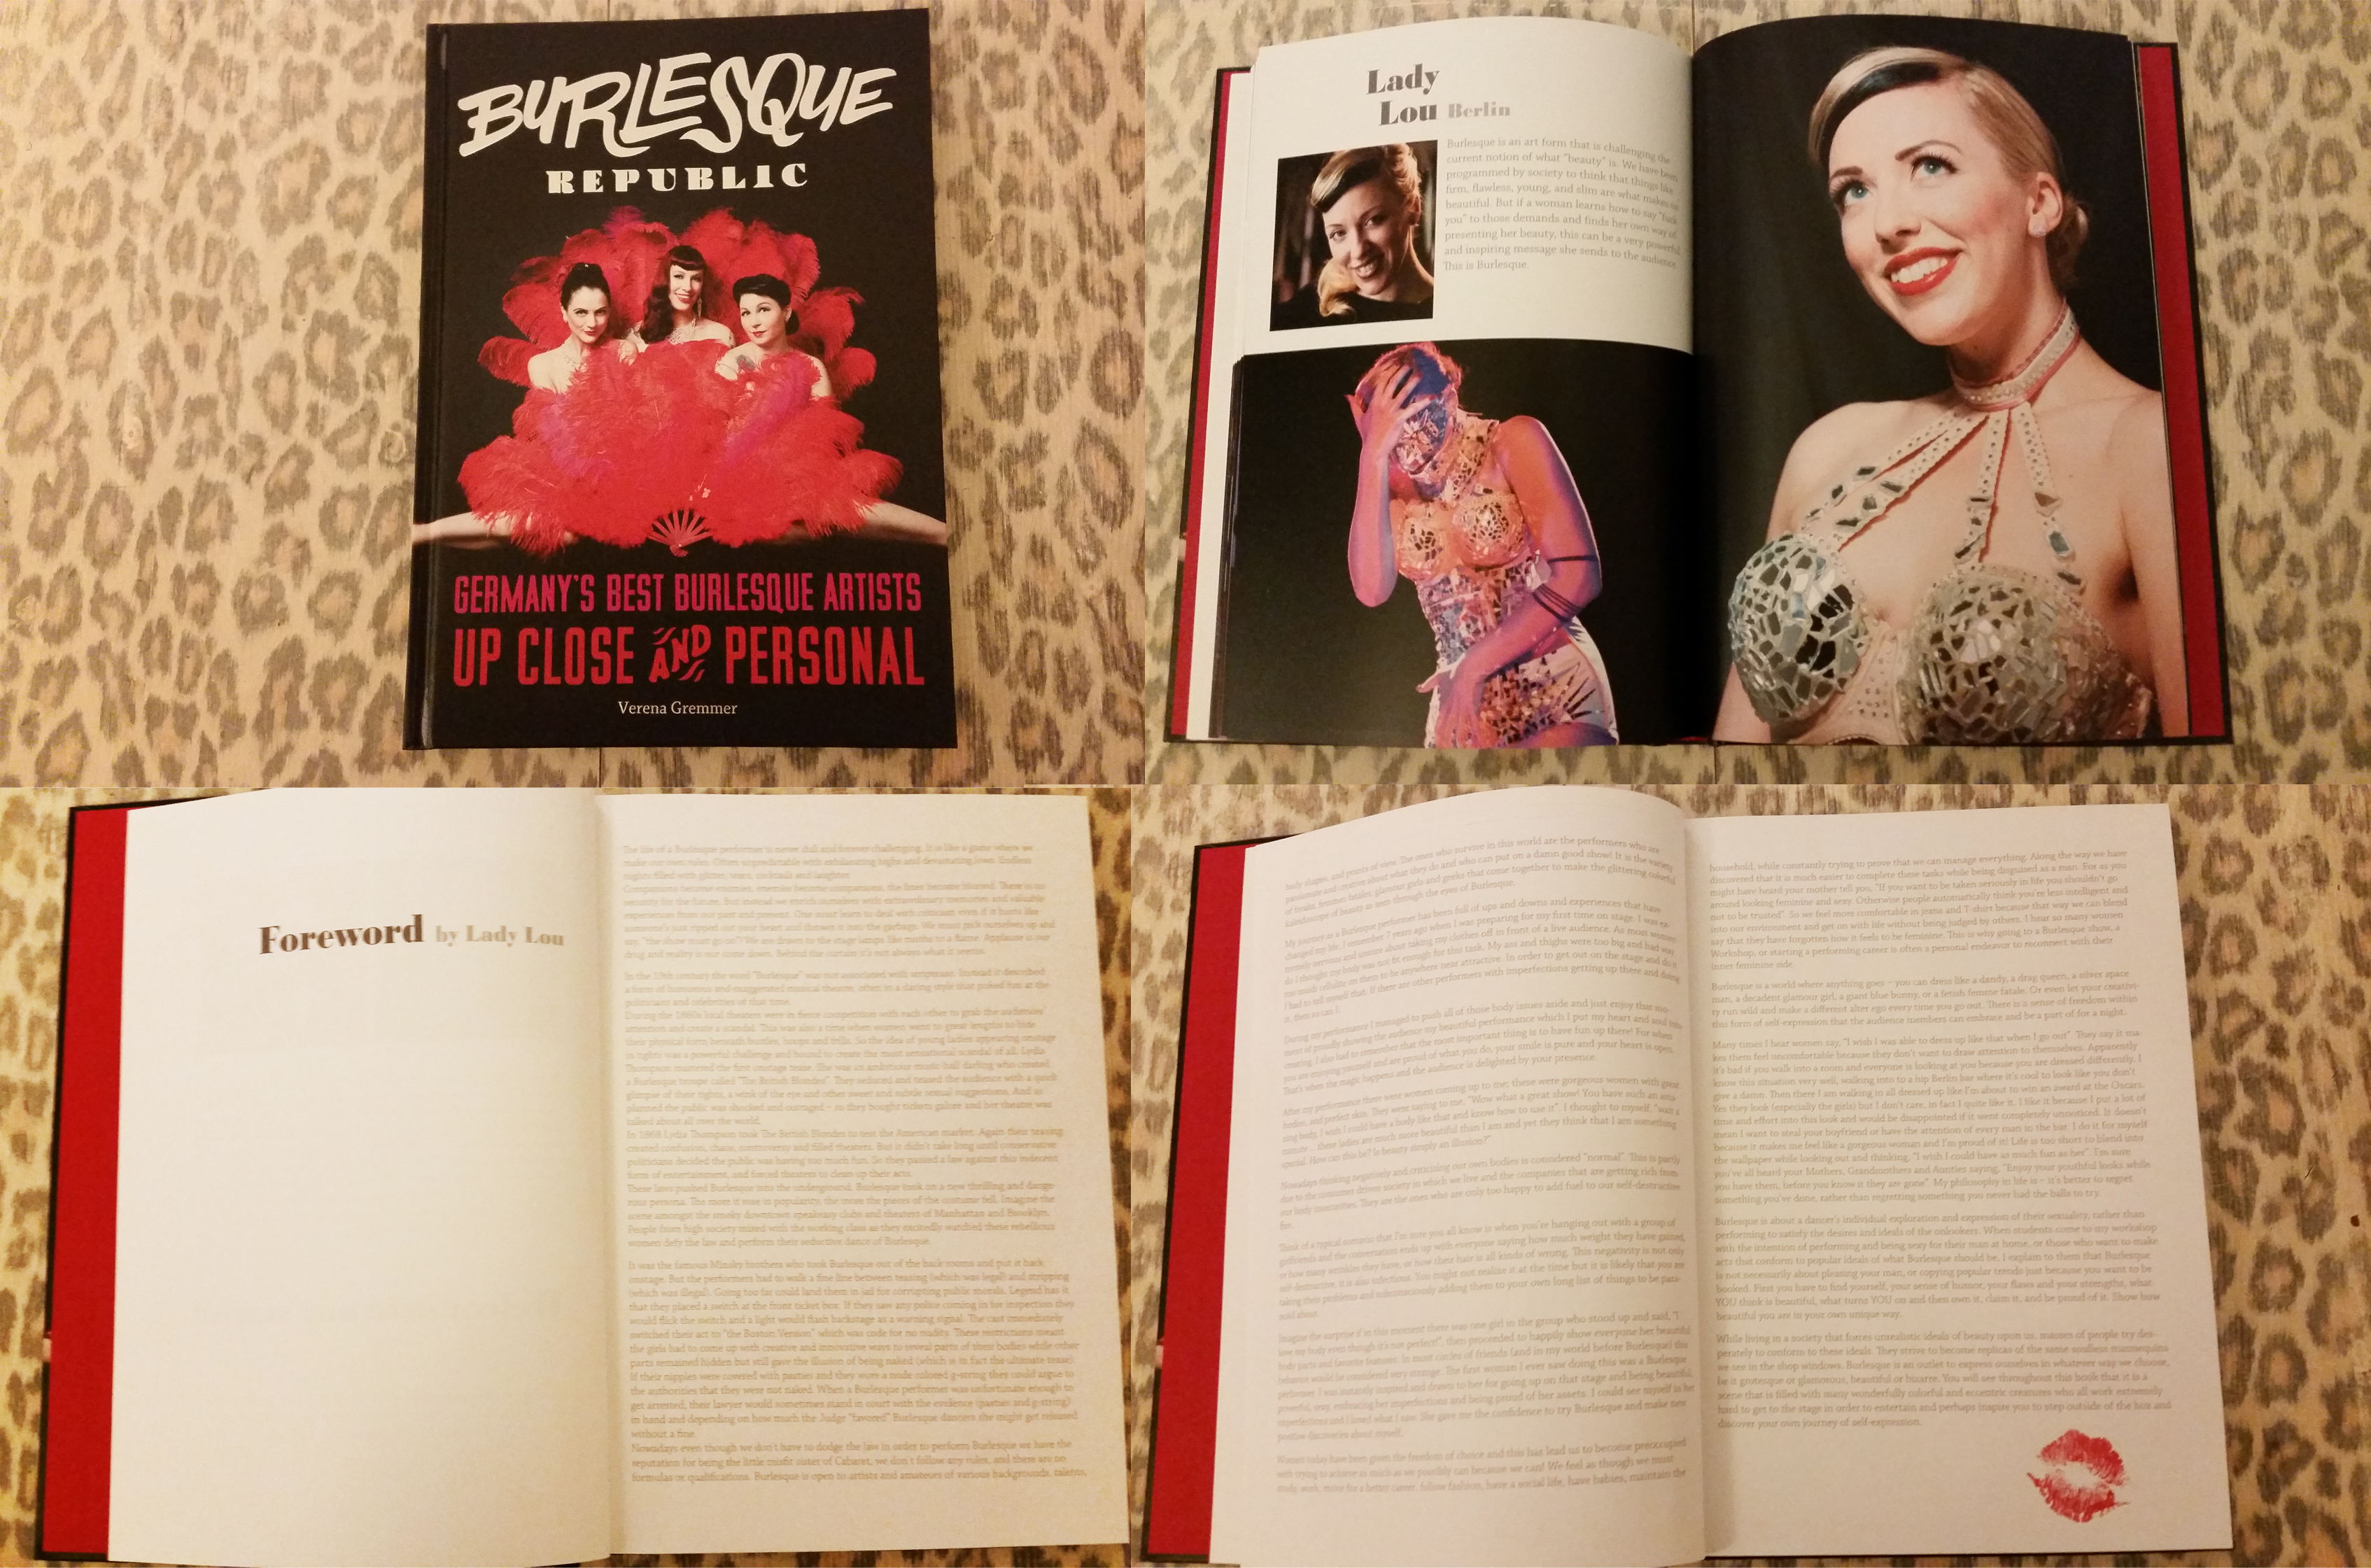 Foreword written by Lady Lou for Burlesque Republic, Germany's Best Burlesque Artists Up Close and Personal by Verena Grammer